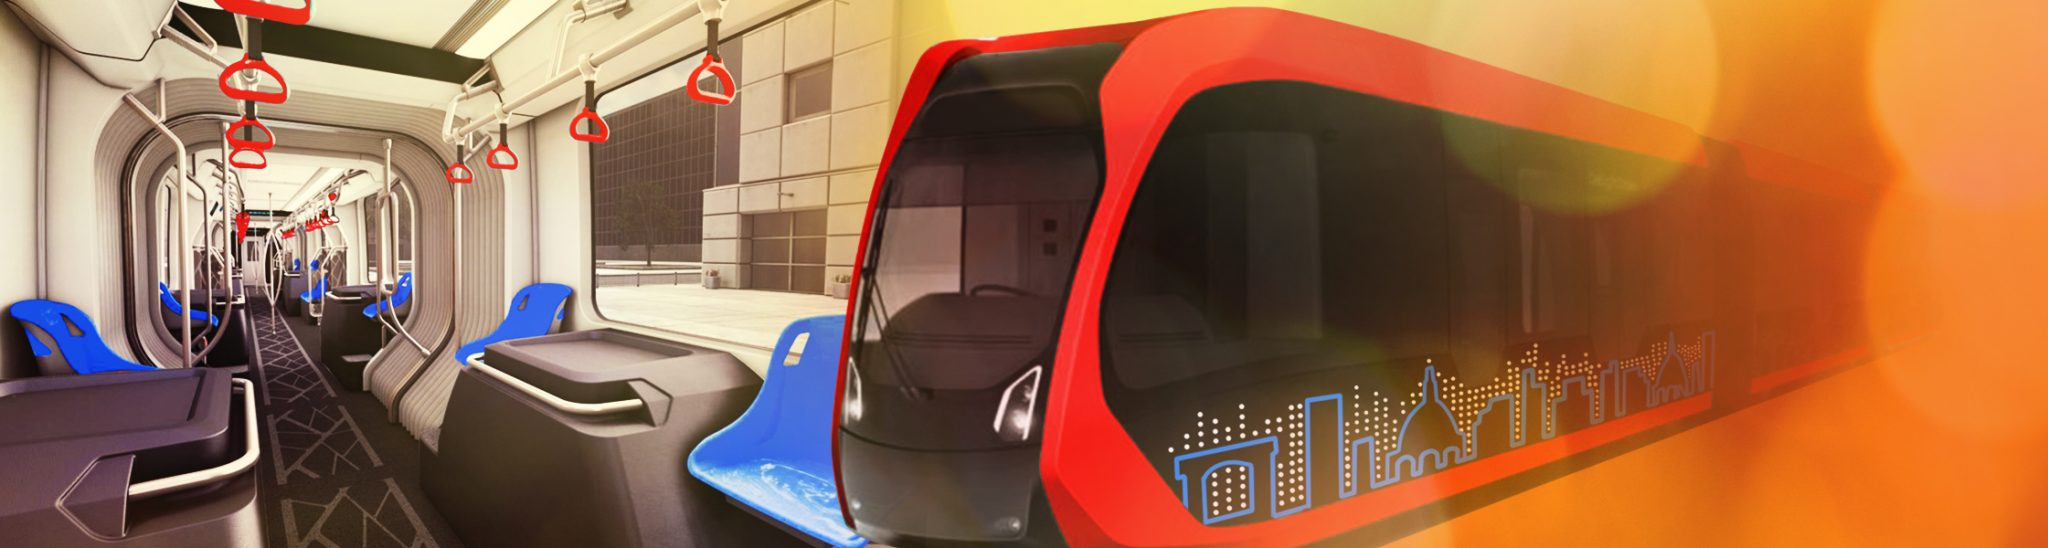 URBAN-TRANSPORTATION-IREKA-WEBSITE-FINAL-BANNER